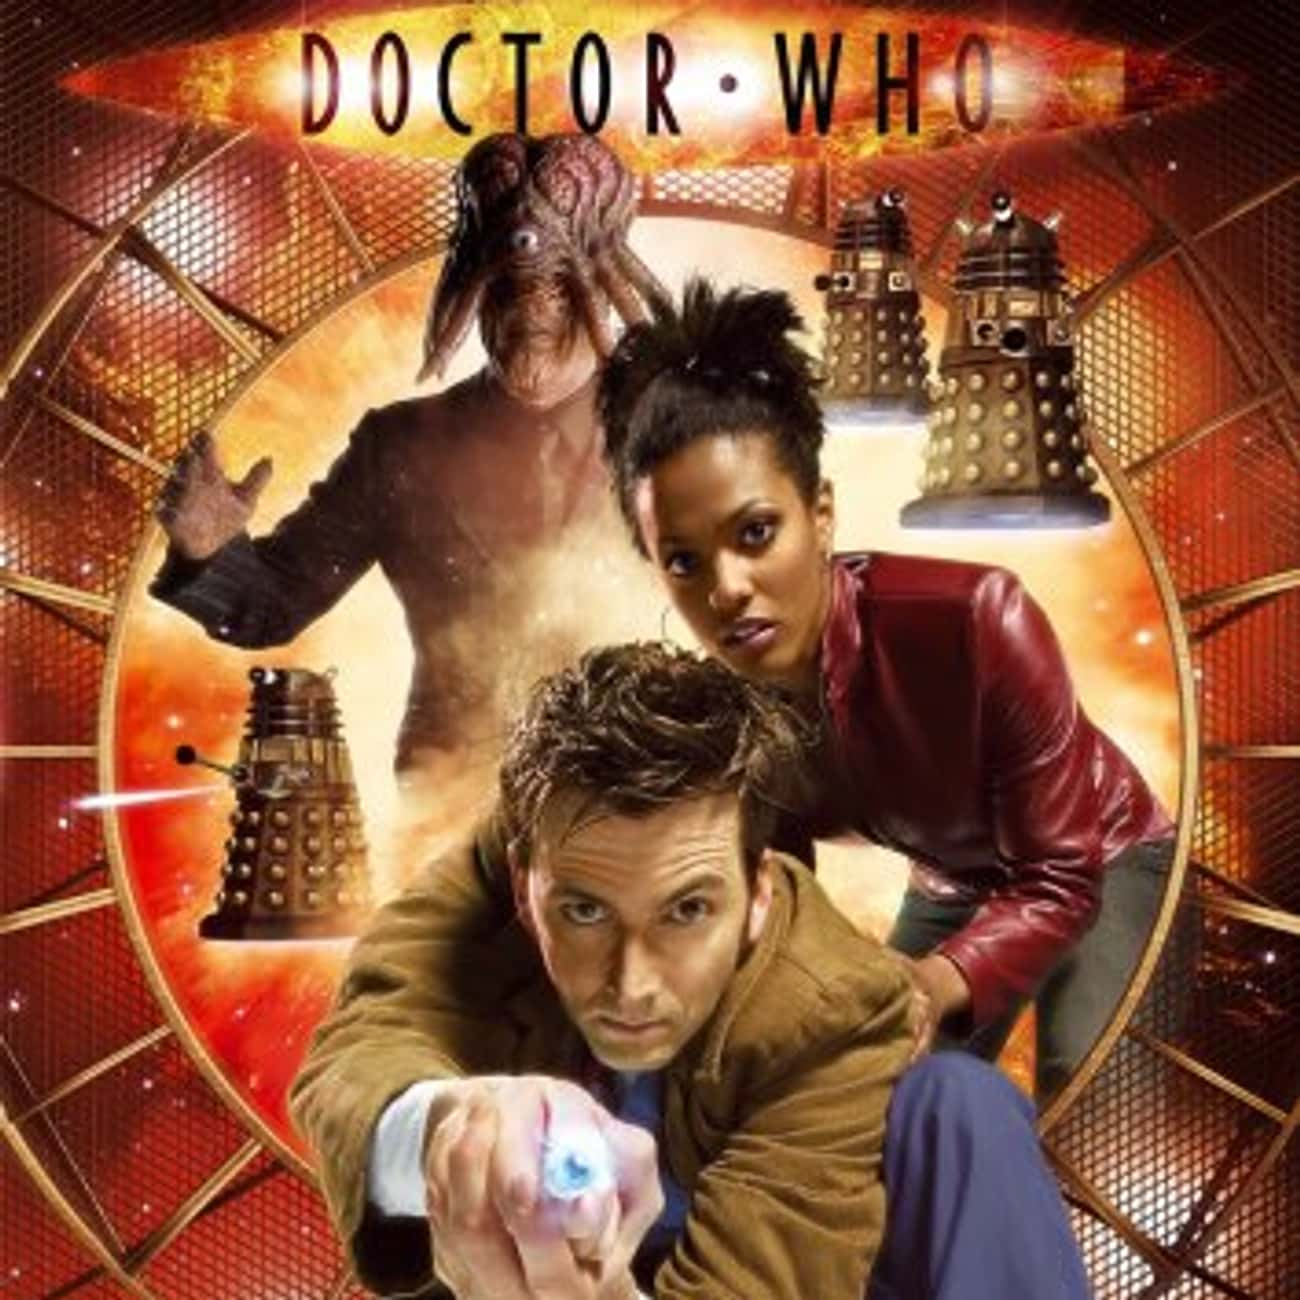 Doctor Who Series 3 (2007) is listed (or ranked) 2 on the list The Best Seasons of Doctor Who